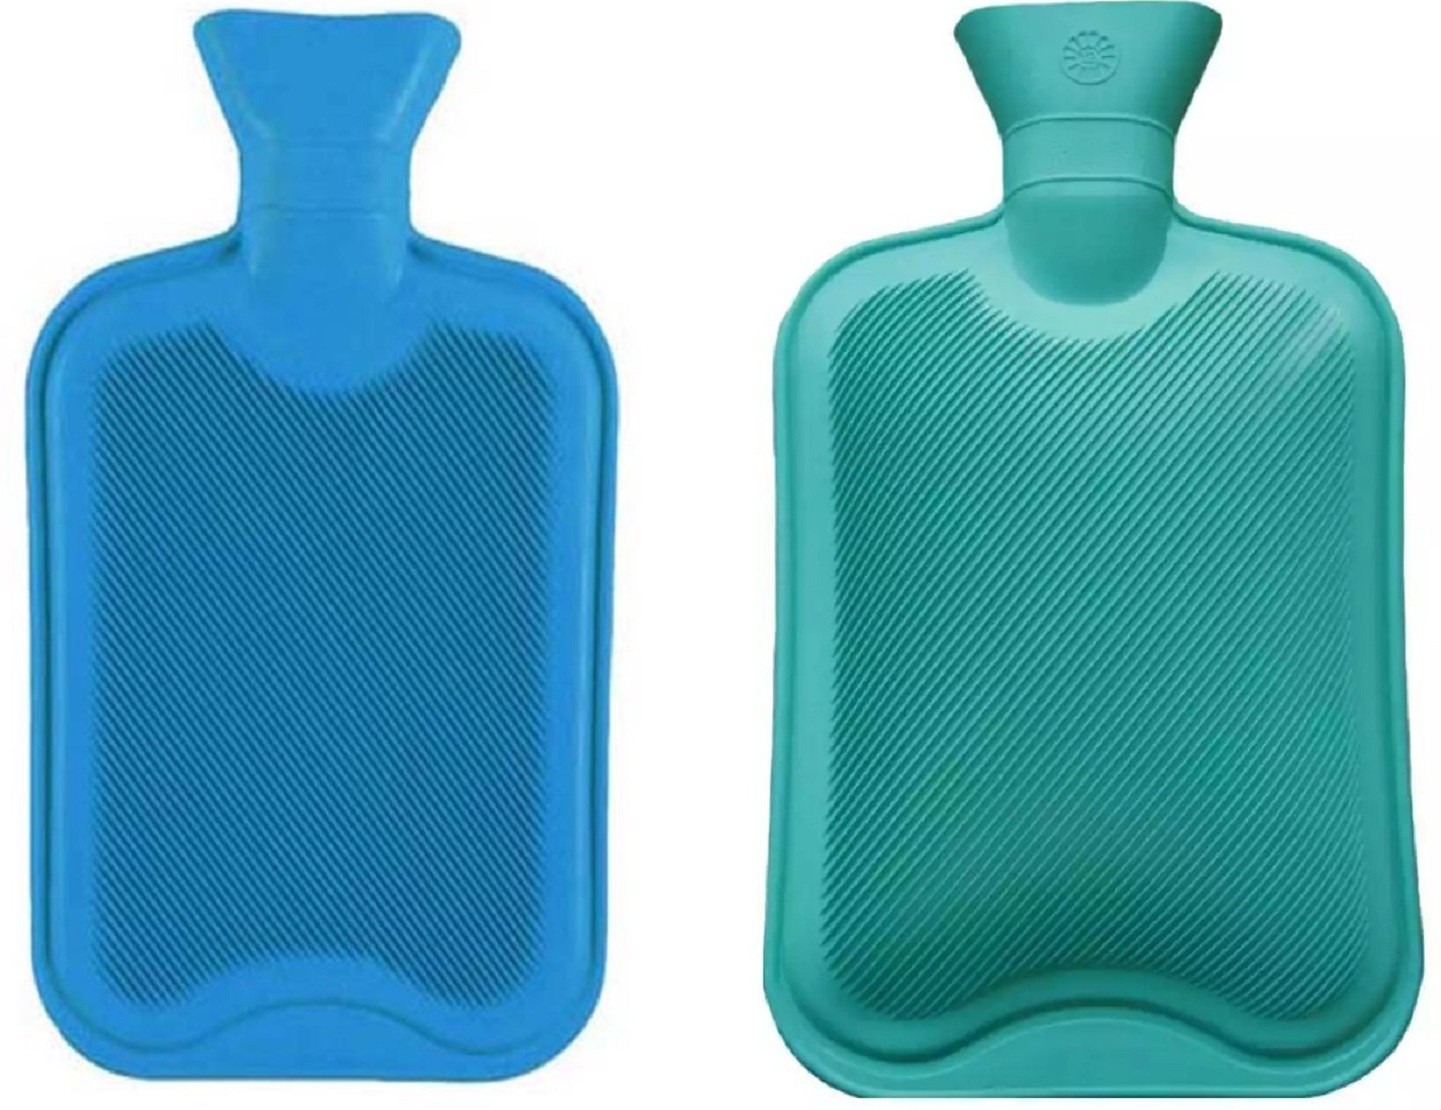 German Chef Combo Comforts Non-electrical 3 L Hot Water Bag(Blue, Green)